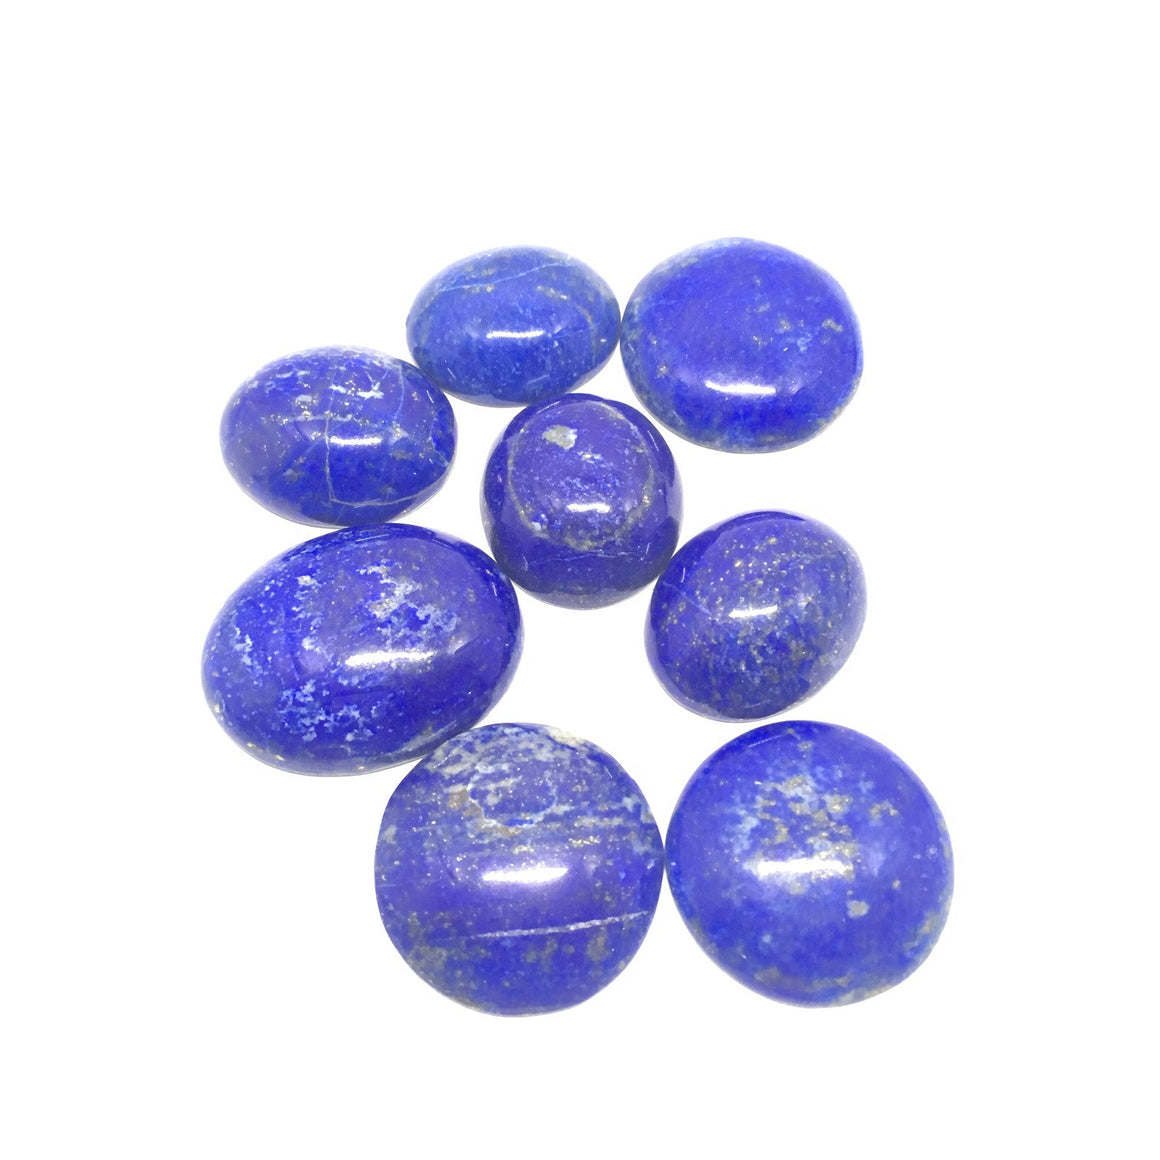 Lapis Lazuli Cabochon - Lapis Cabochon For Ring Oval Cut - 283.00 Carat